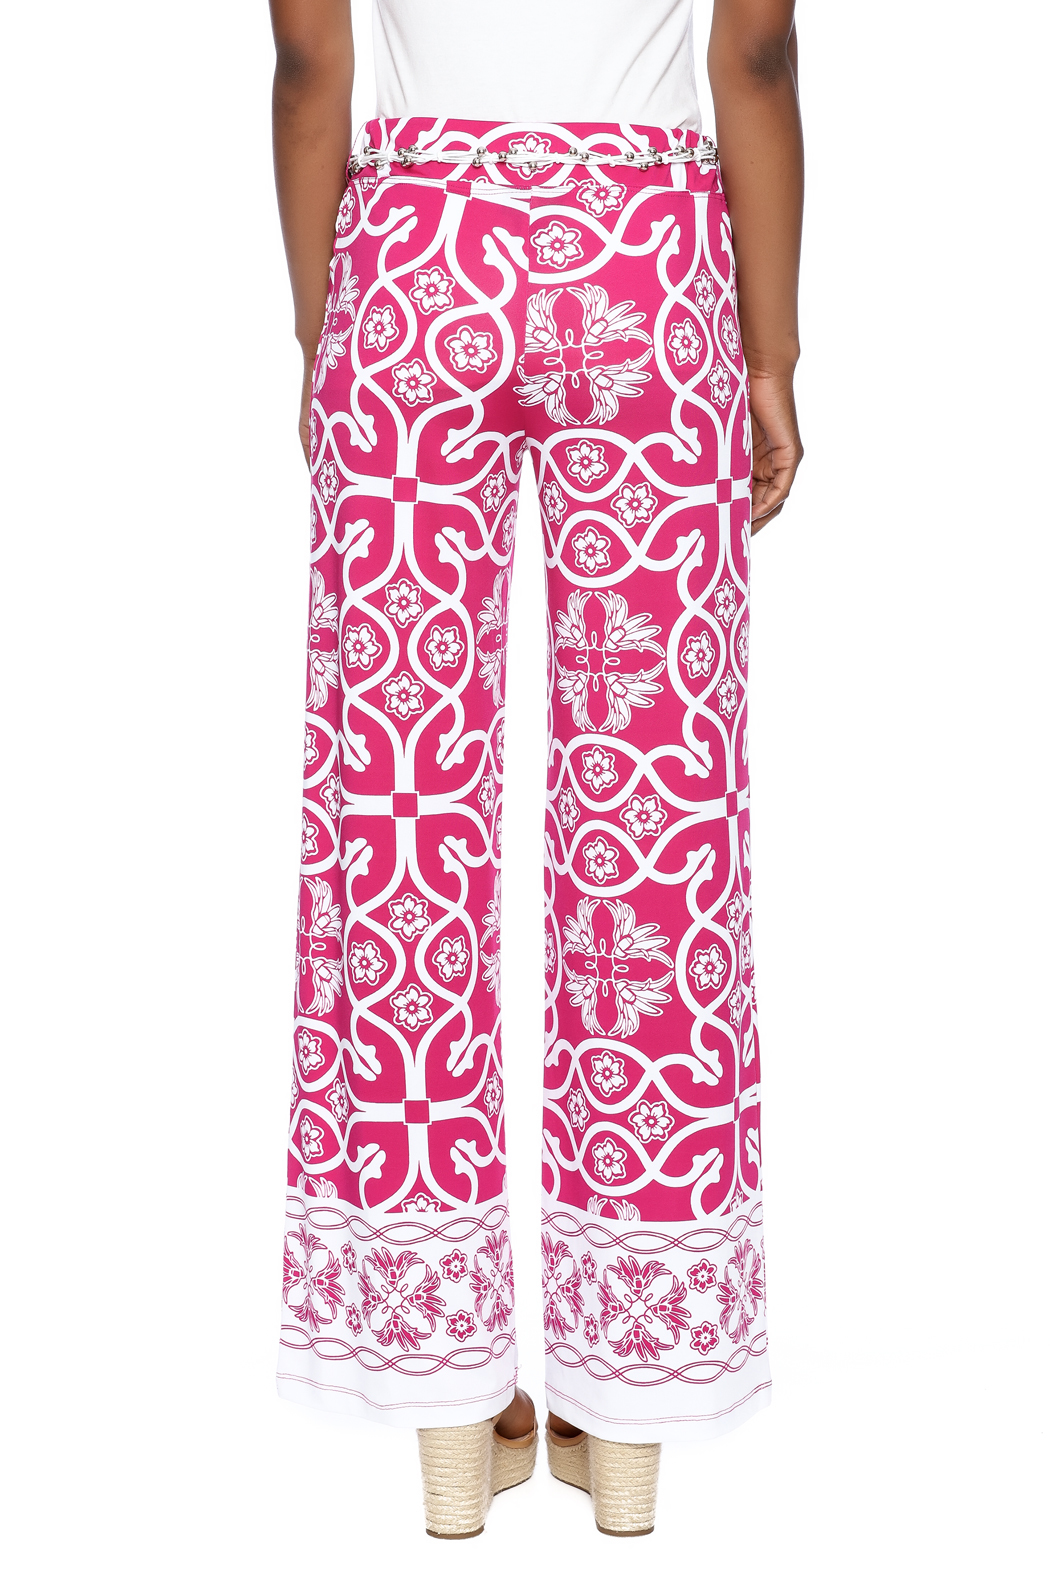 Multiples Palazzo Print Pant - Back Cropped Image